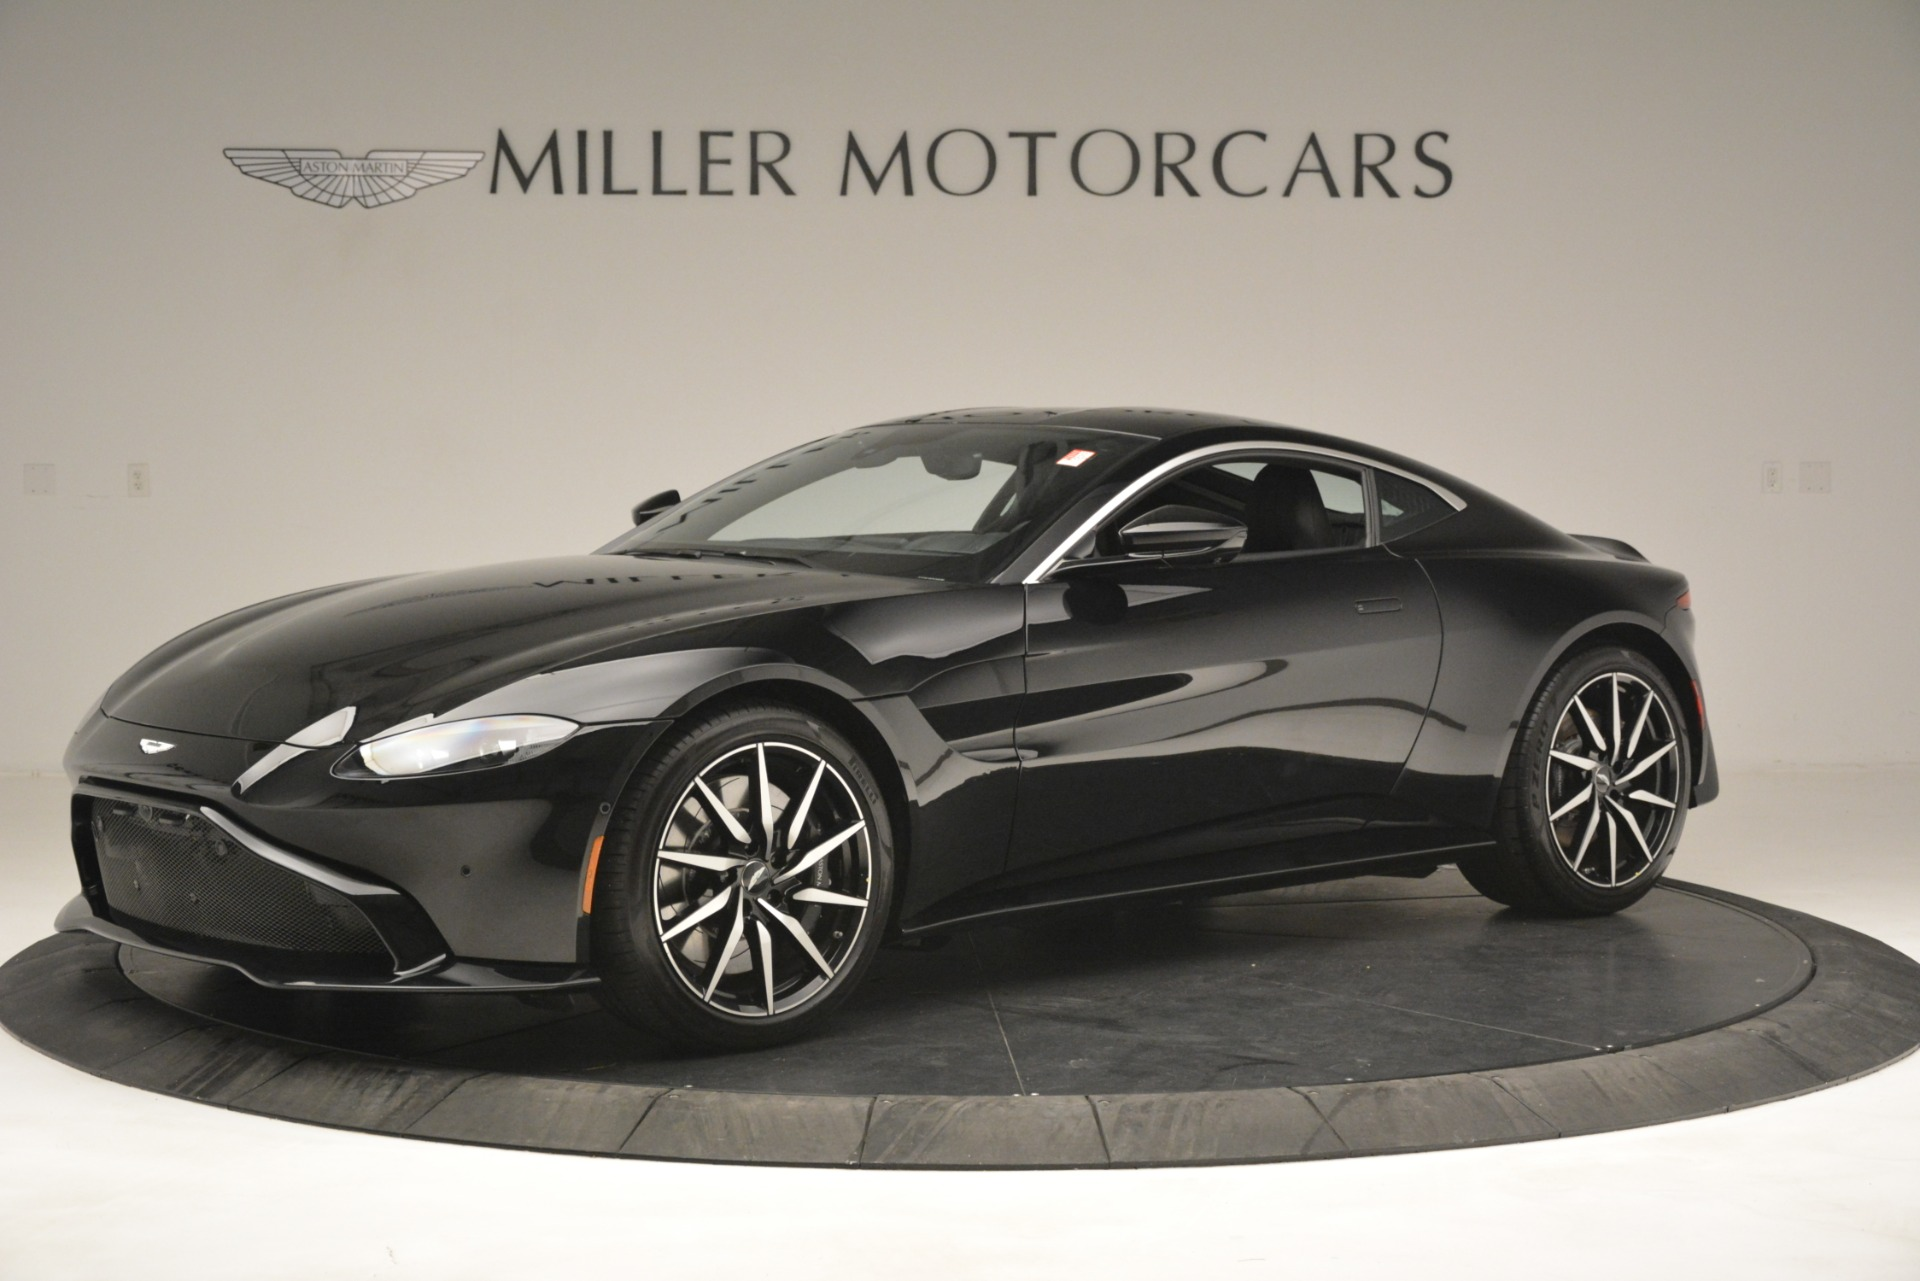 New 2019 Aston Martin Vantage Coupe for sale Sold at Alfa Romeo of Westport in Westport CT 06880 1